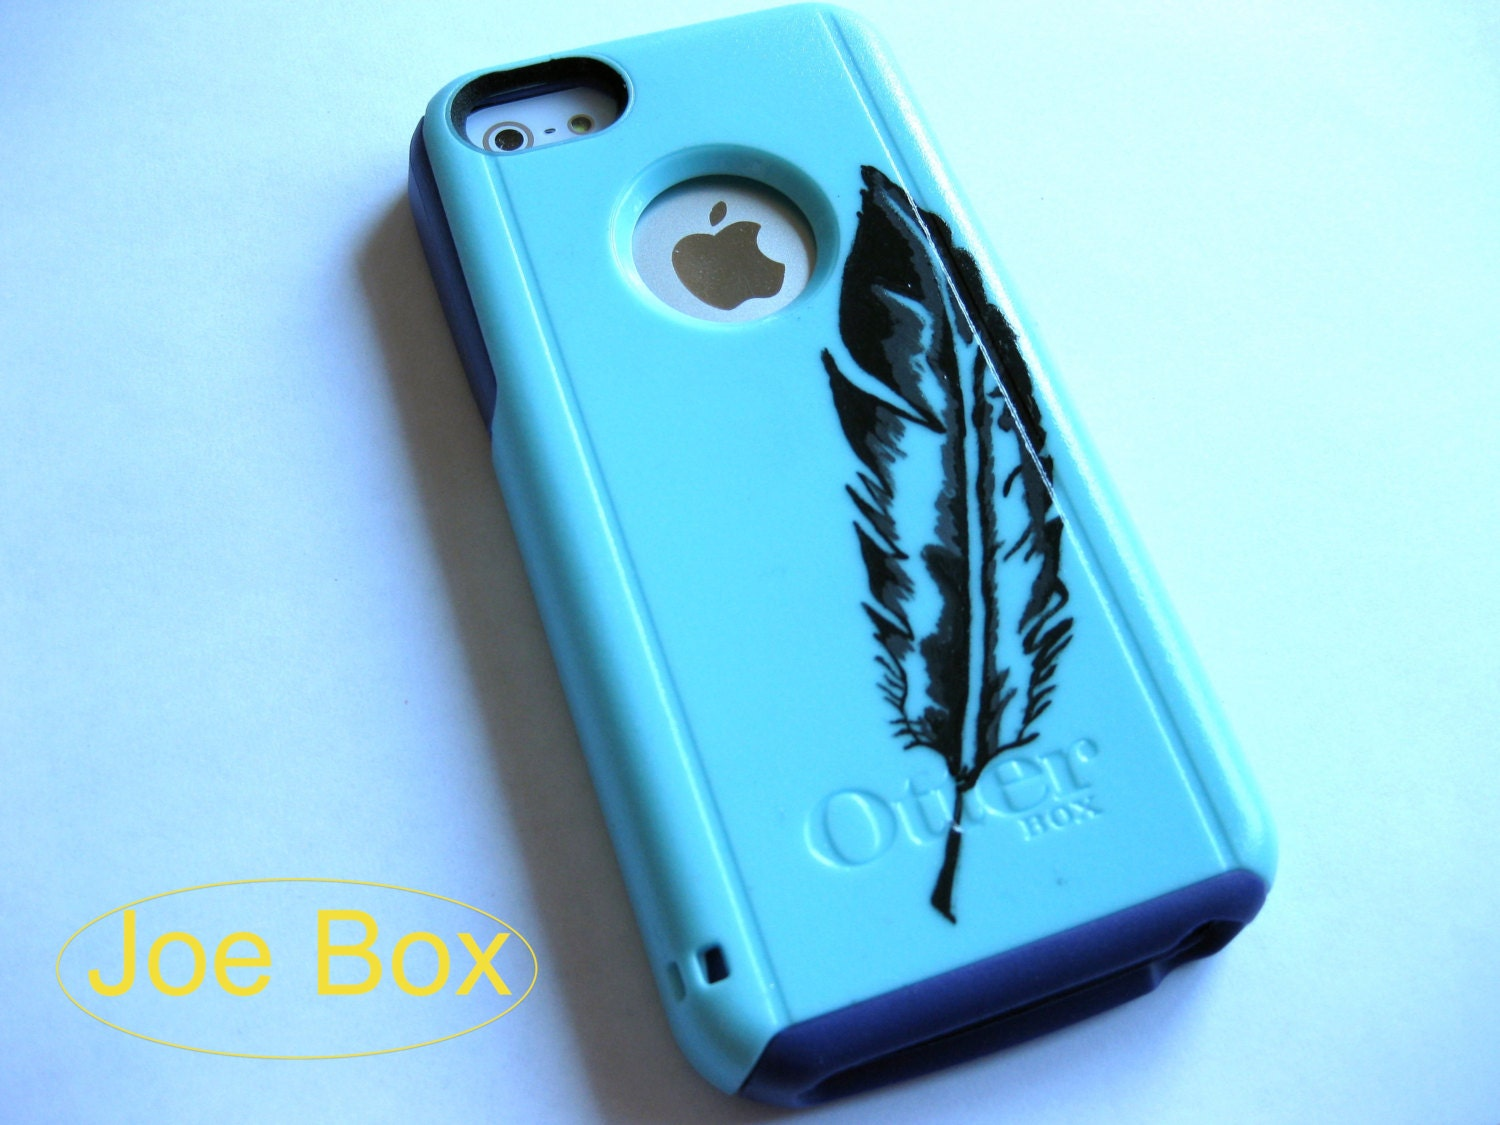 iphone 5c cases otterbox otterbox iphone 5c cover iphone 5c otterbox iphone 3980